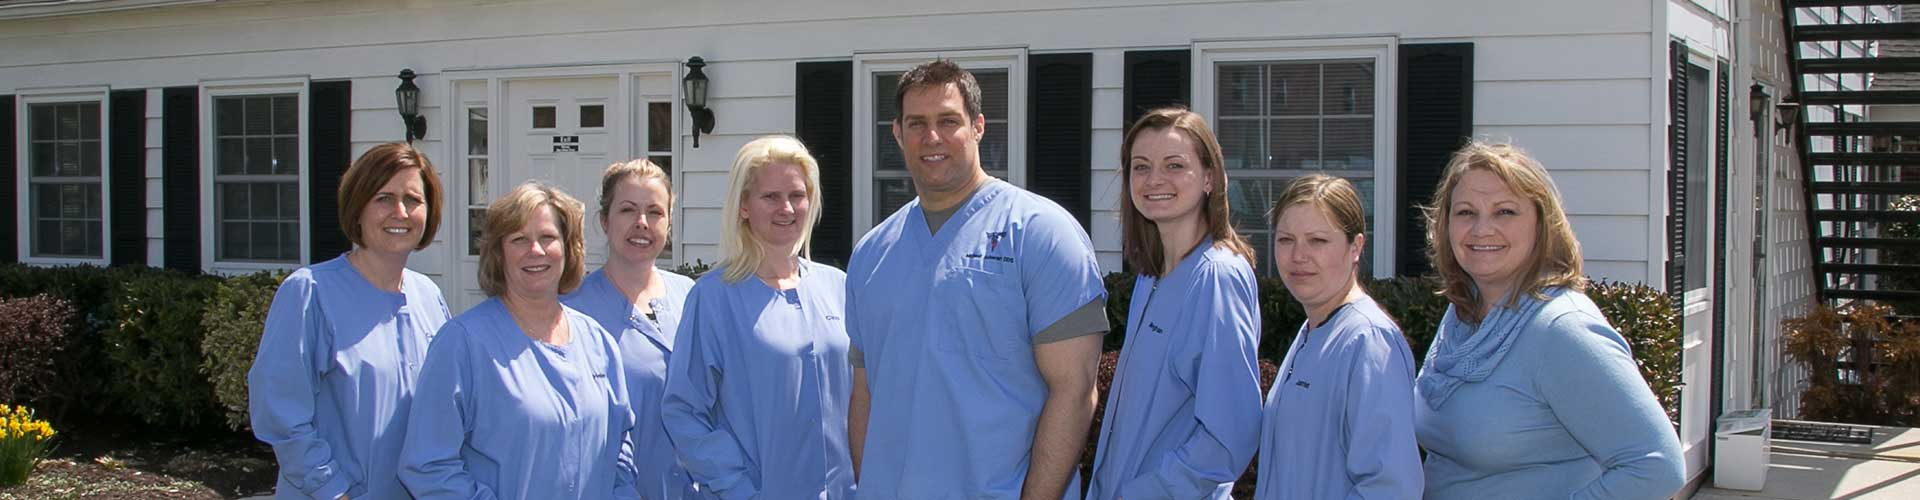 Catonsville MD Dentist